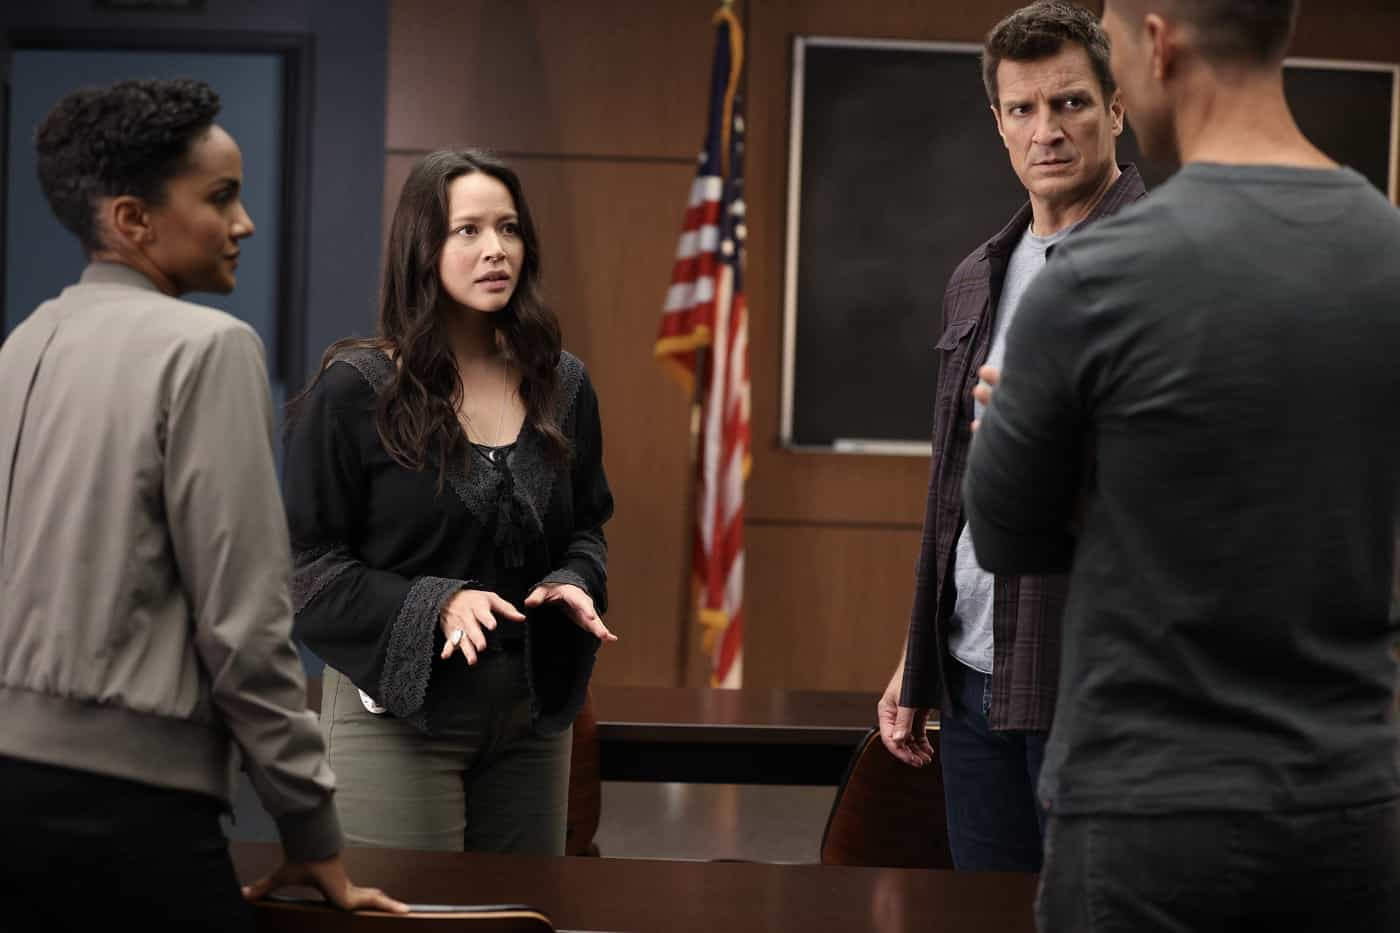 """THE ROOKIE Season 4 Episode 1 - """"Life and Death"""" – Officer Nolan and the entire team race against the clock to locate Lopez after she is kidnapped on her wedding day, not only to save her life but her unborn child's, on the season four premiere of """"The Rookie,"""" SUNDAY, SEPT. 26  (10:00-11:00 p.m. EDT), on ABC. (ABC/Raymond Liu) MELISSA O'NEIL, NATHAN FILLION"""